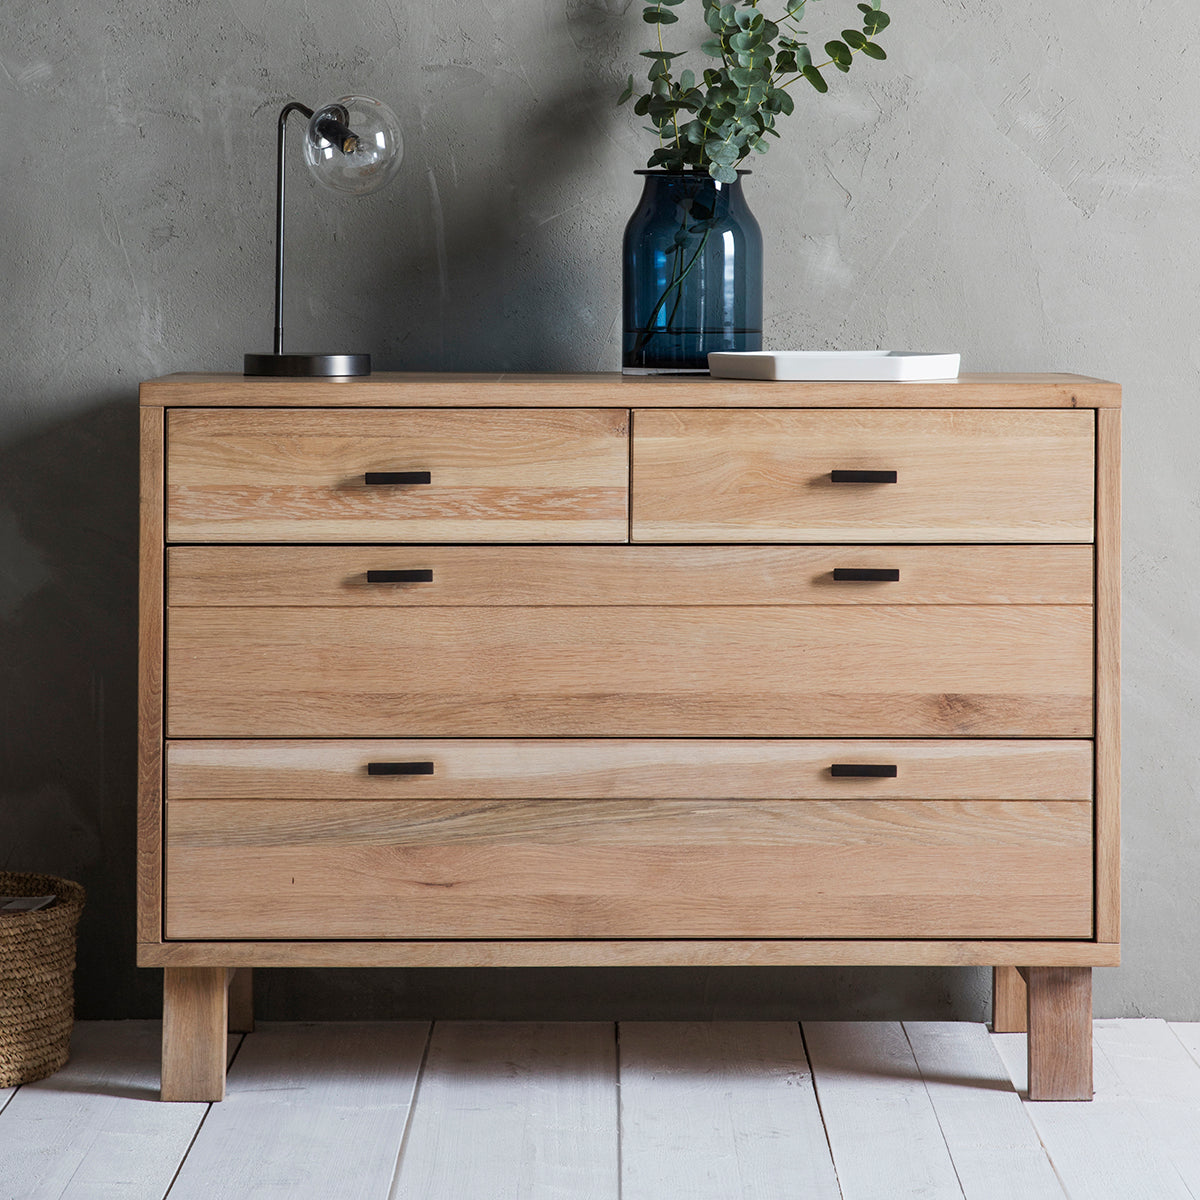 Hexham 4 Drawers Chest - Ezzo